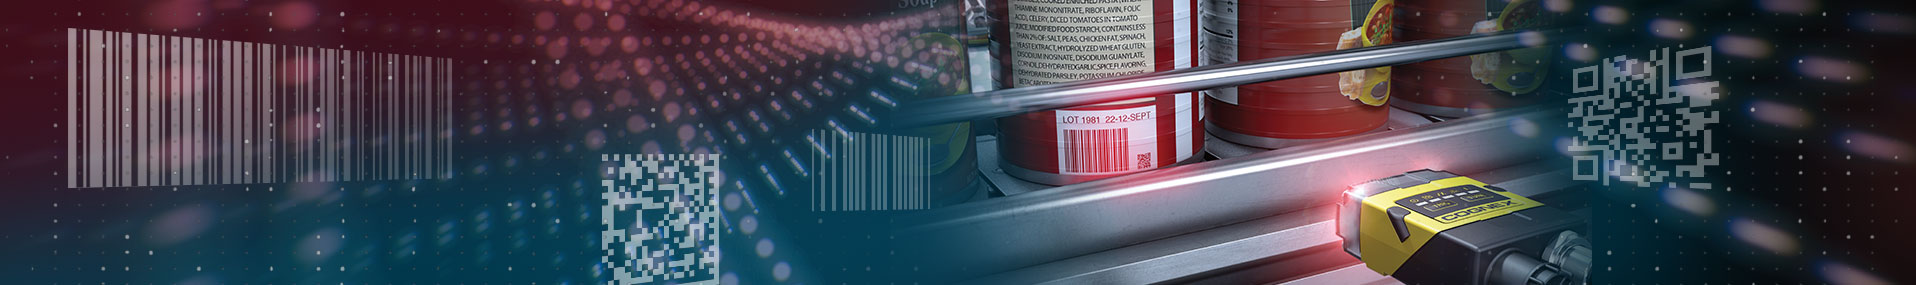 Barcode Reading on can using dataman and floating code examples